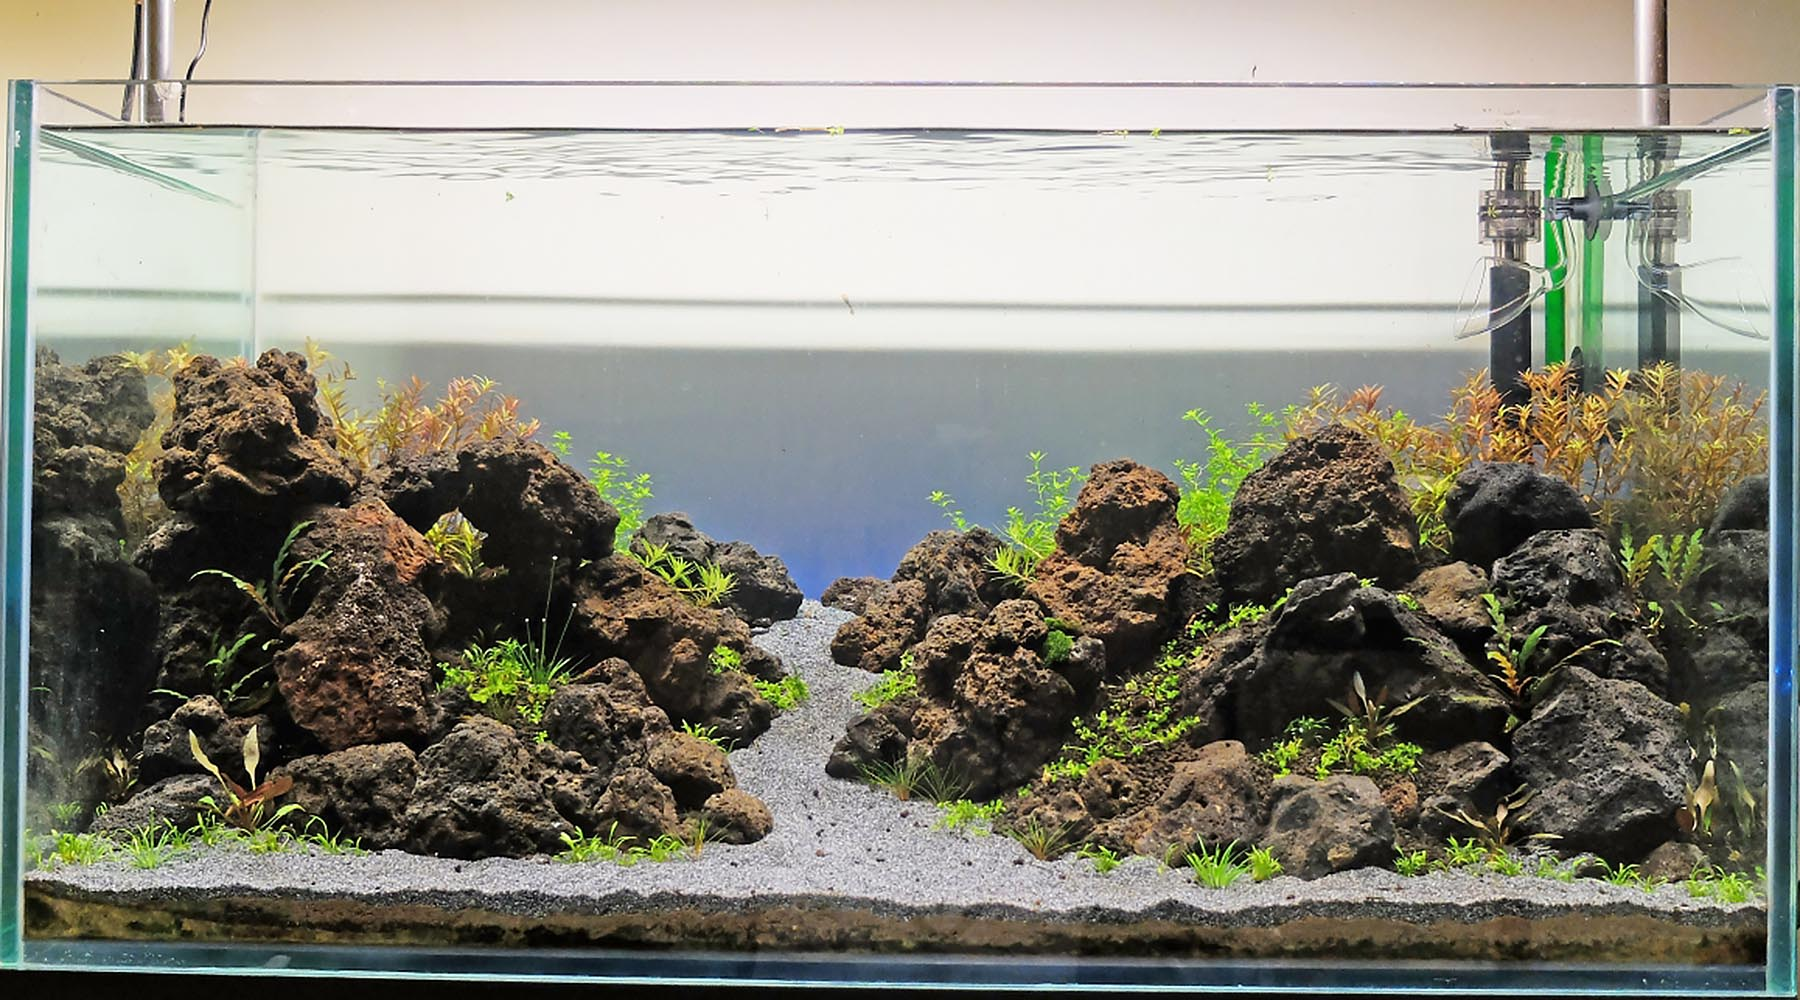 Should I bother cycling a planted tank before planting?